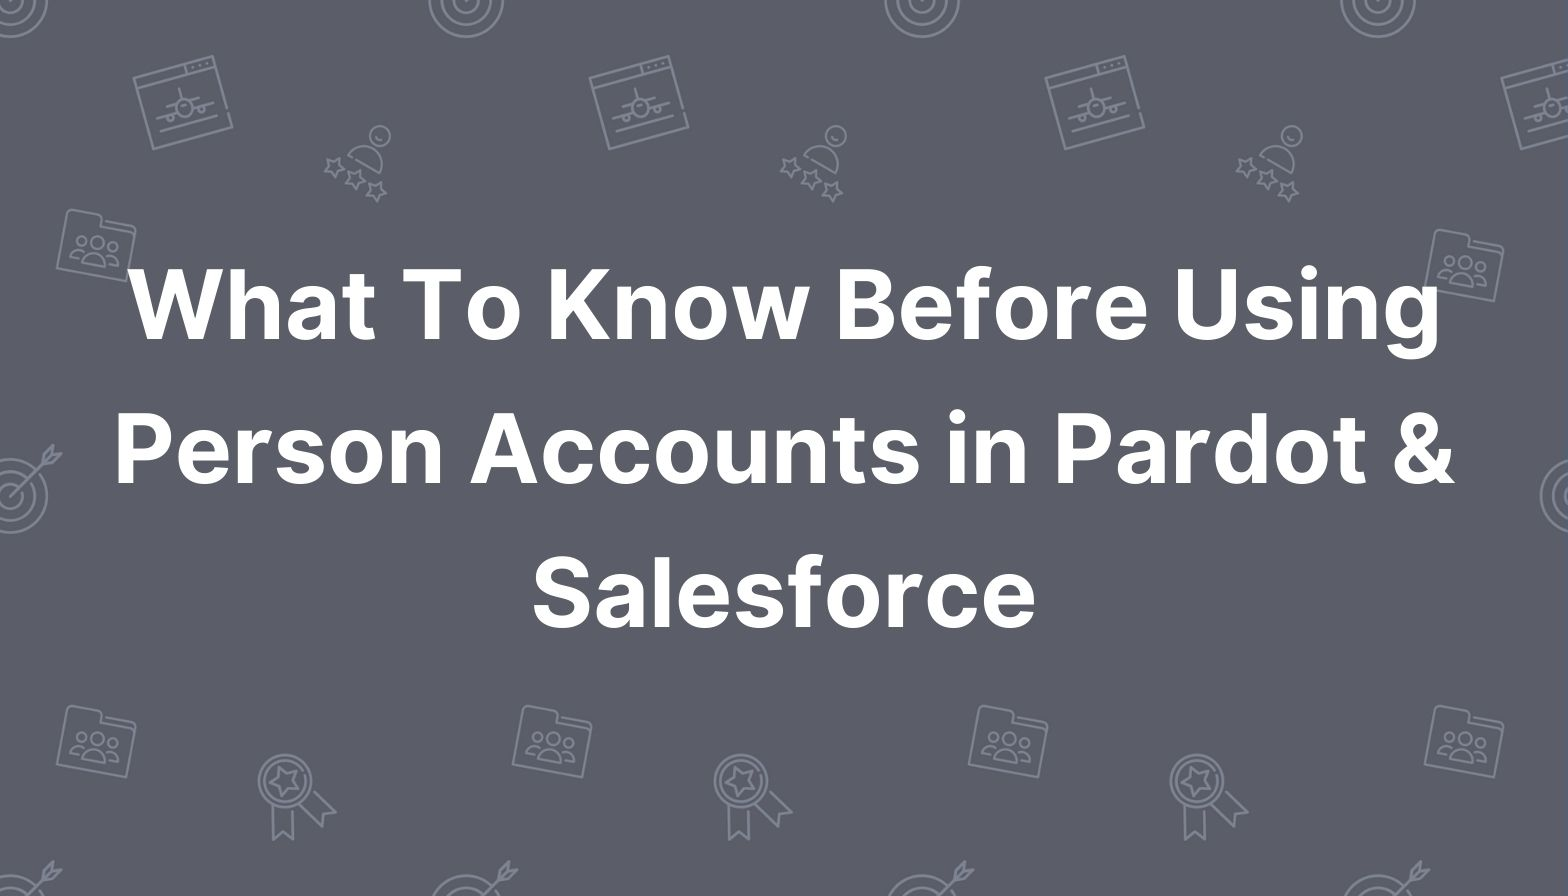 What to Know Before Using Person Accounts in Pardot & Salesforce